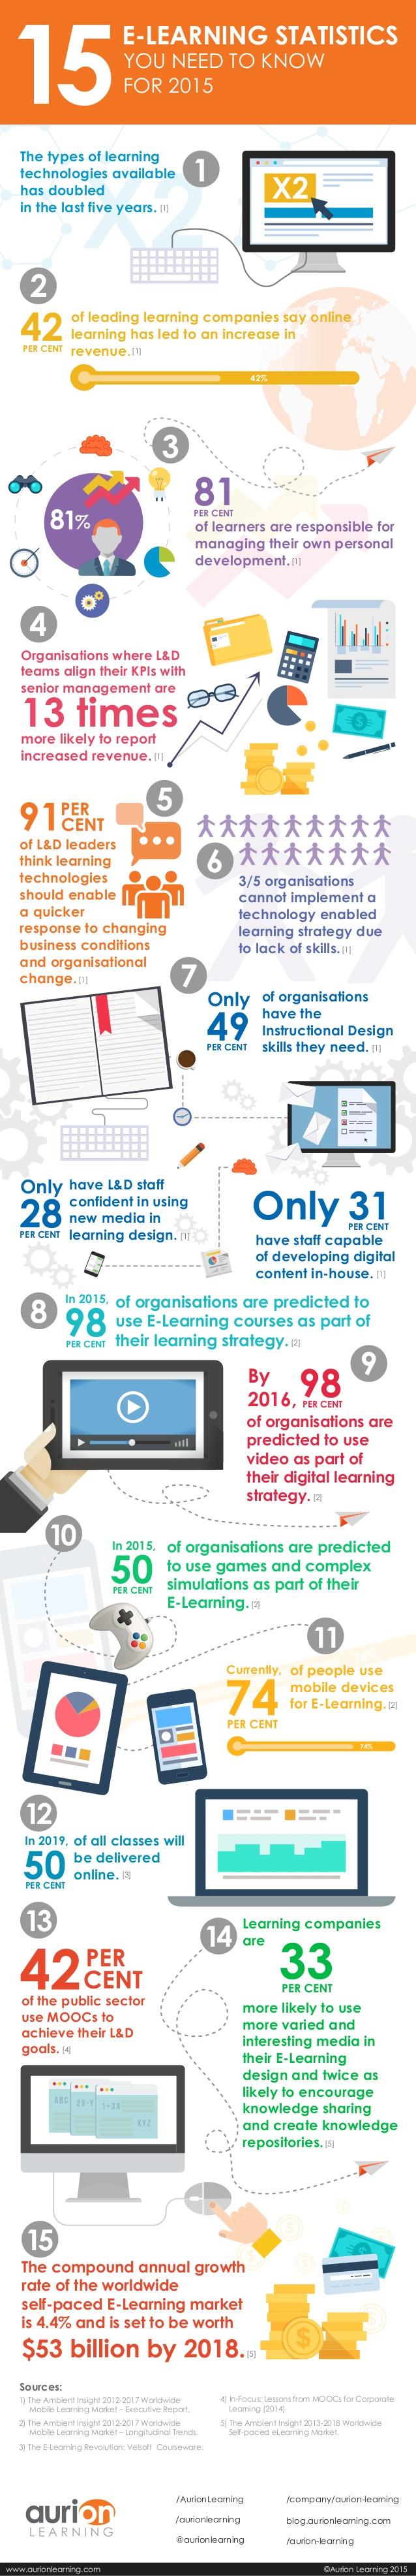 eLearning 2015 Infographic